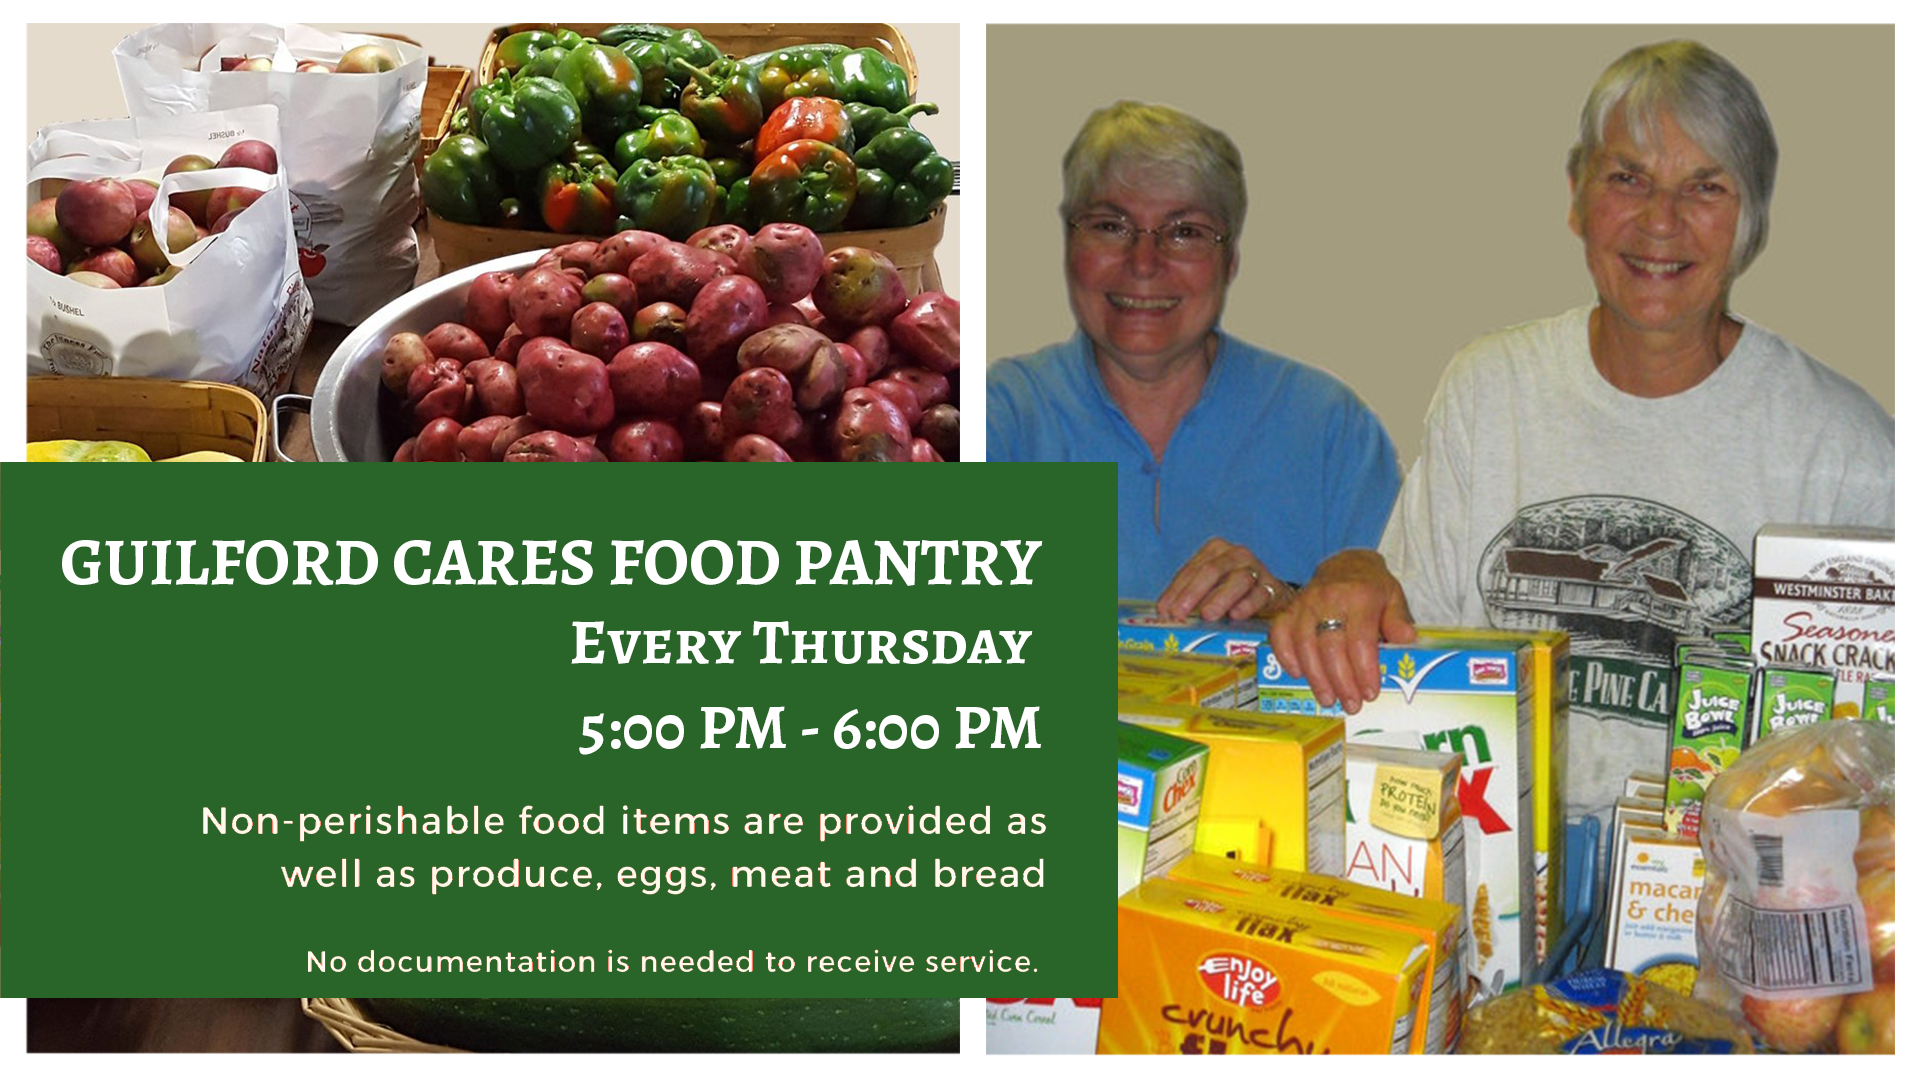 Guilford Cares Weekly Food Pantry